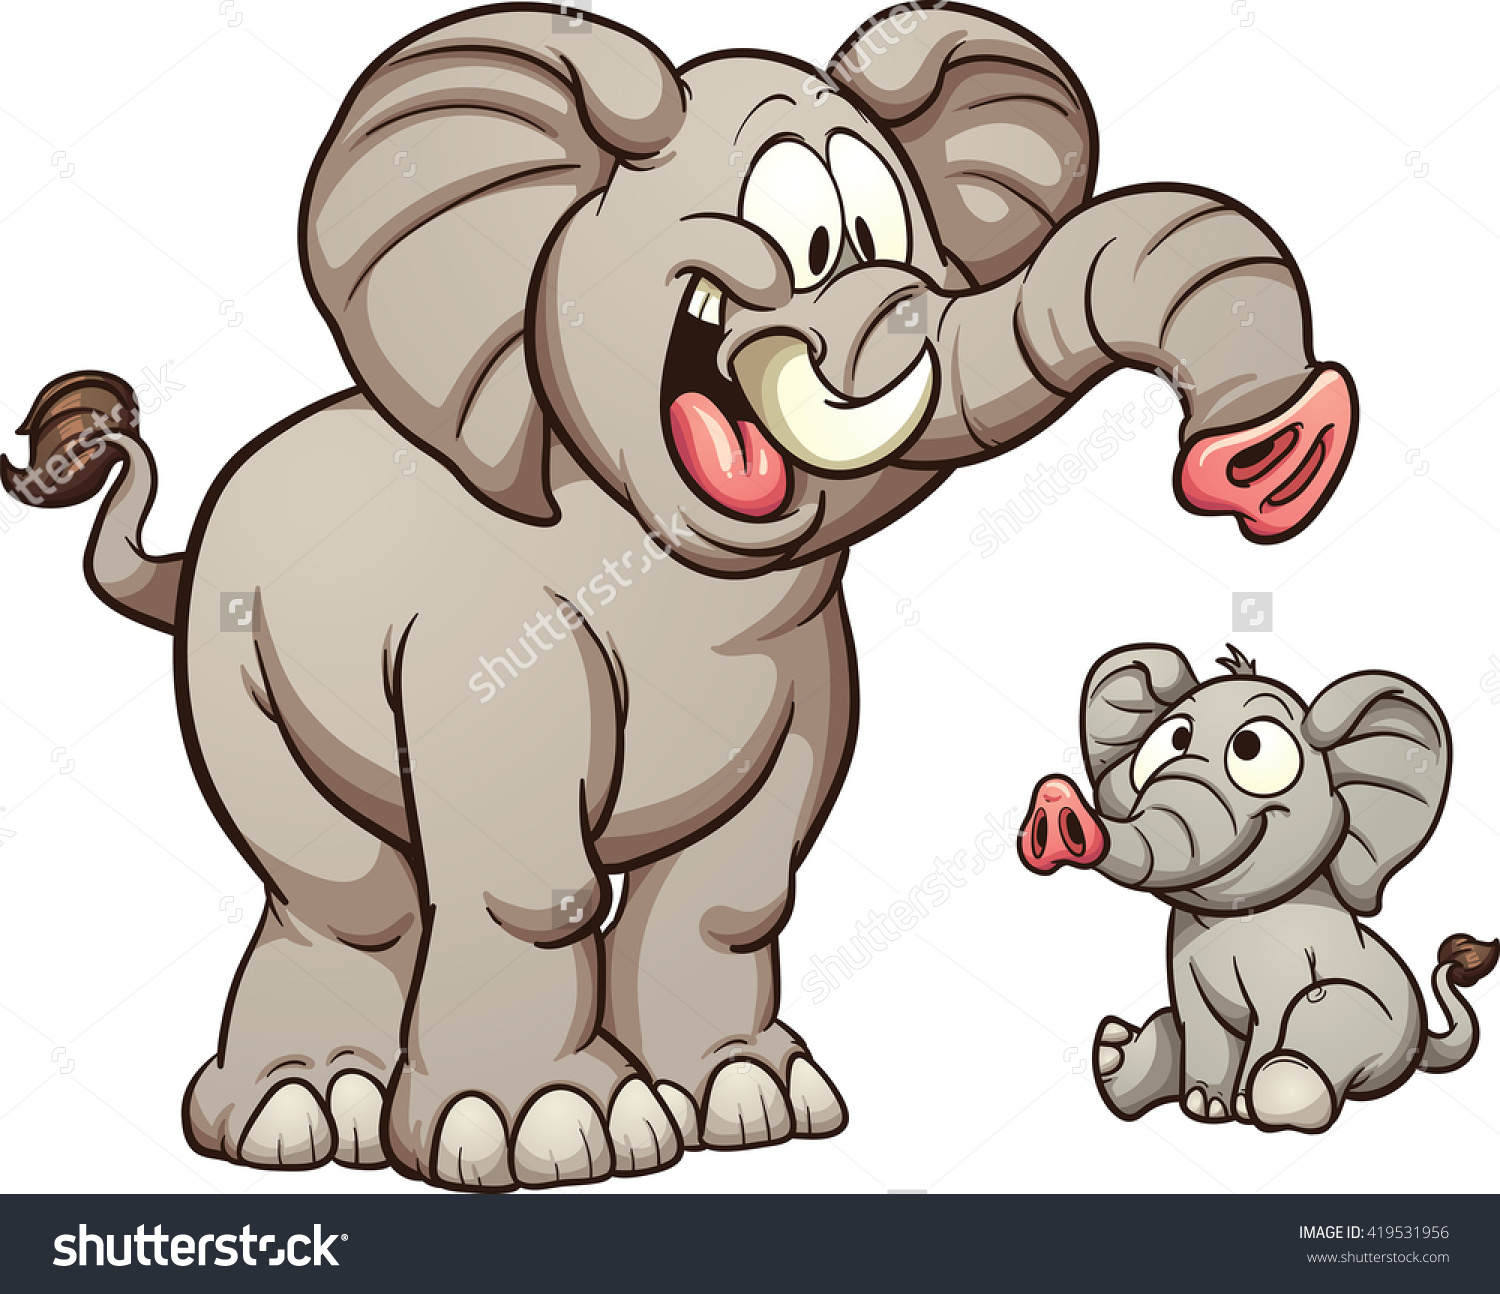 Big and small clipart graphic library library Big Small Cartoon Elephants Vector Clip Stock Vector 419531956 ... graphic library library